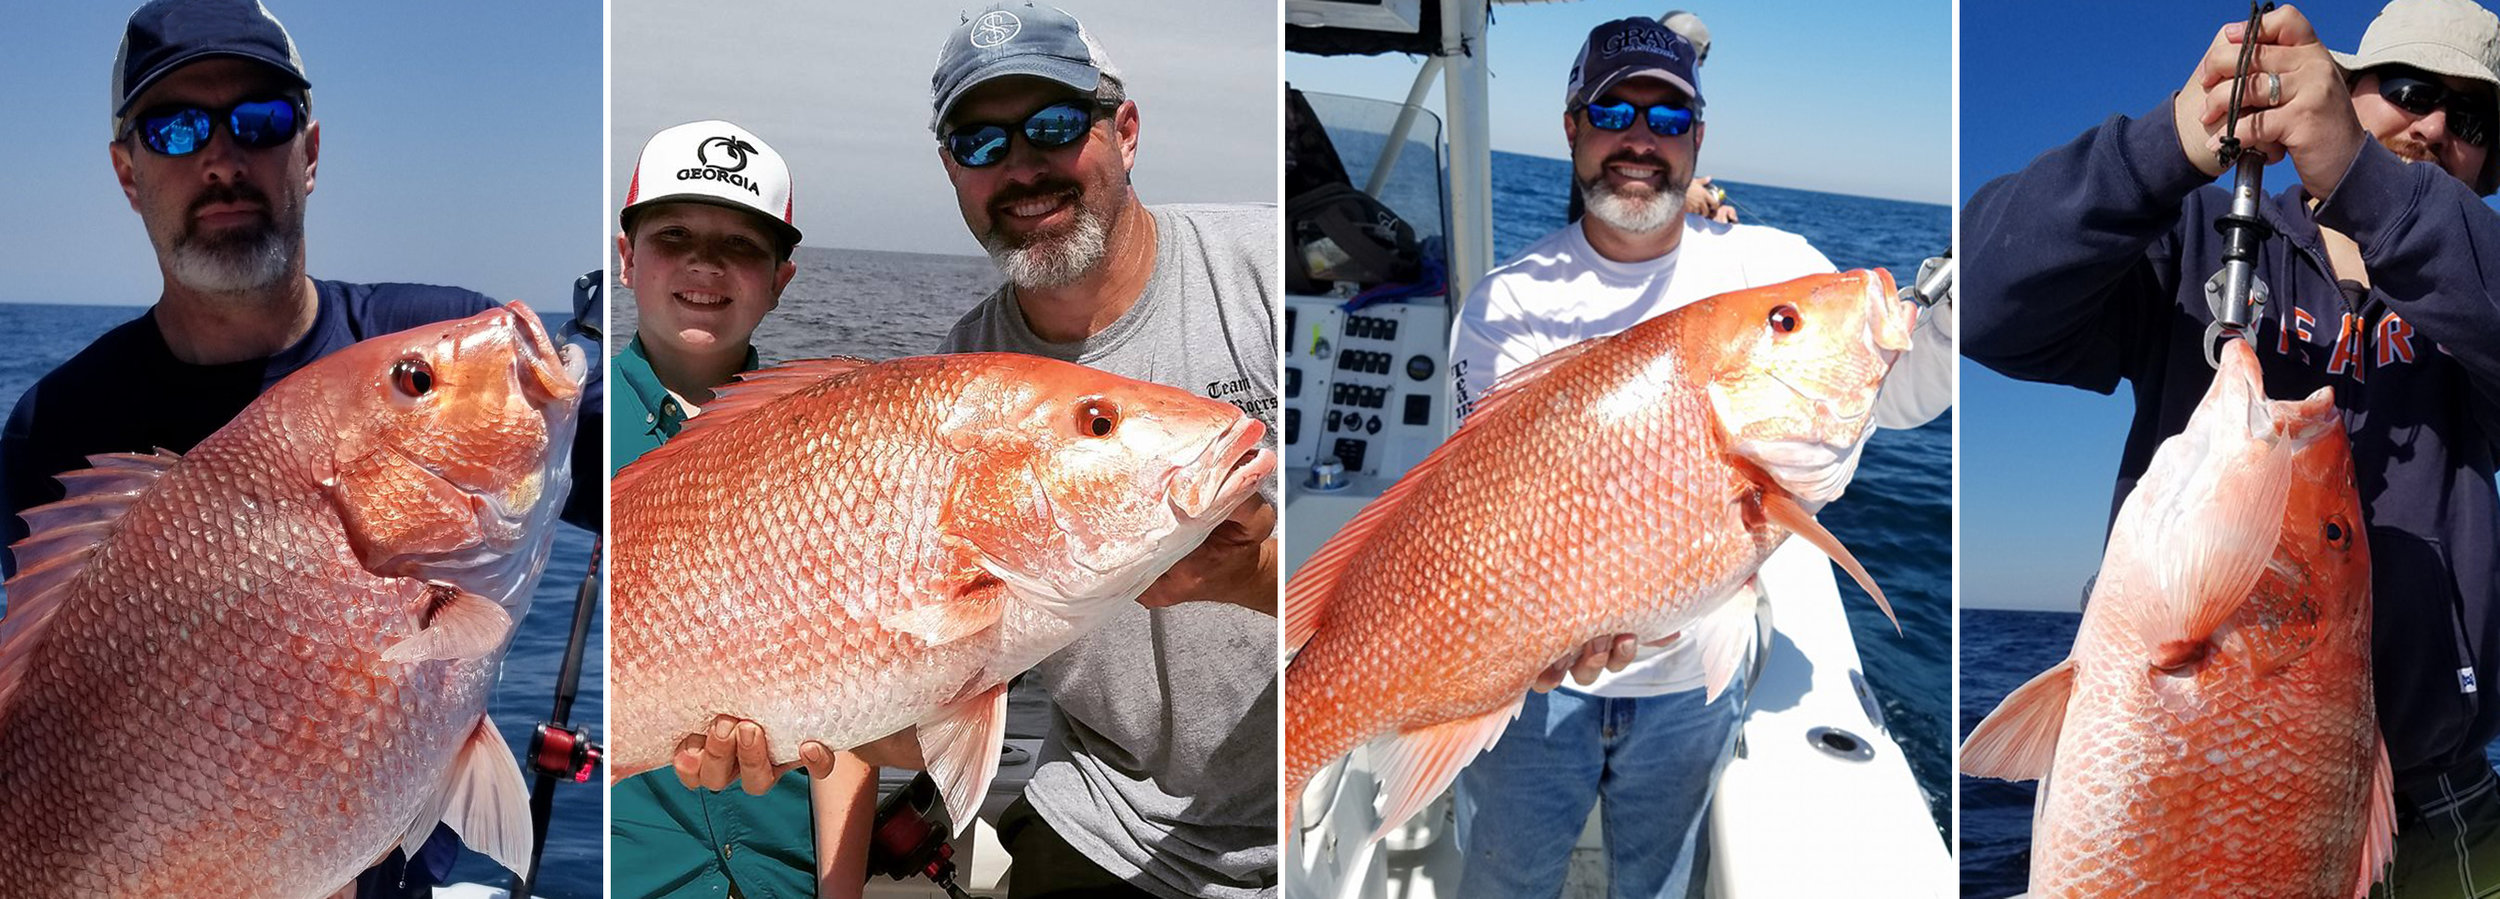 Captain Chad Starling with 4 big red snappers